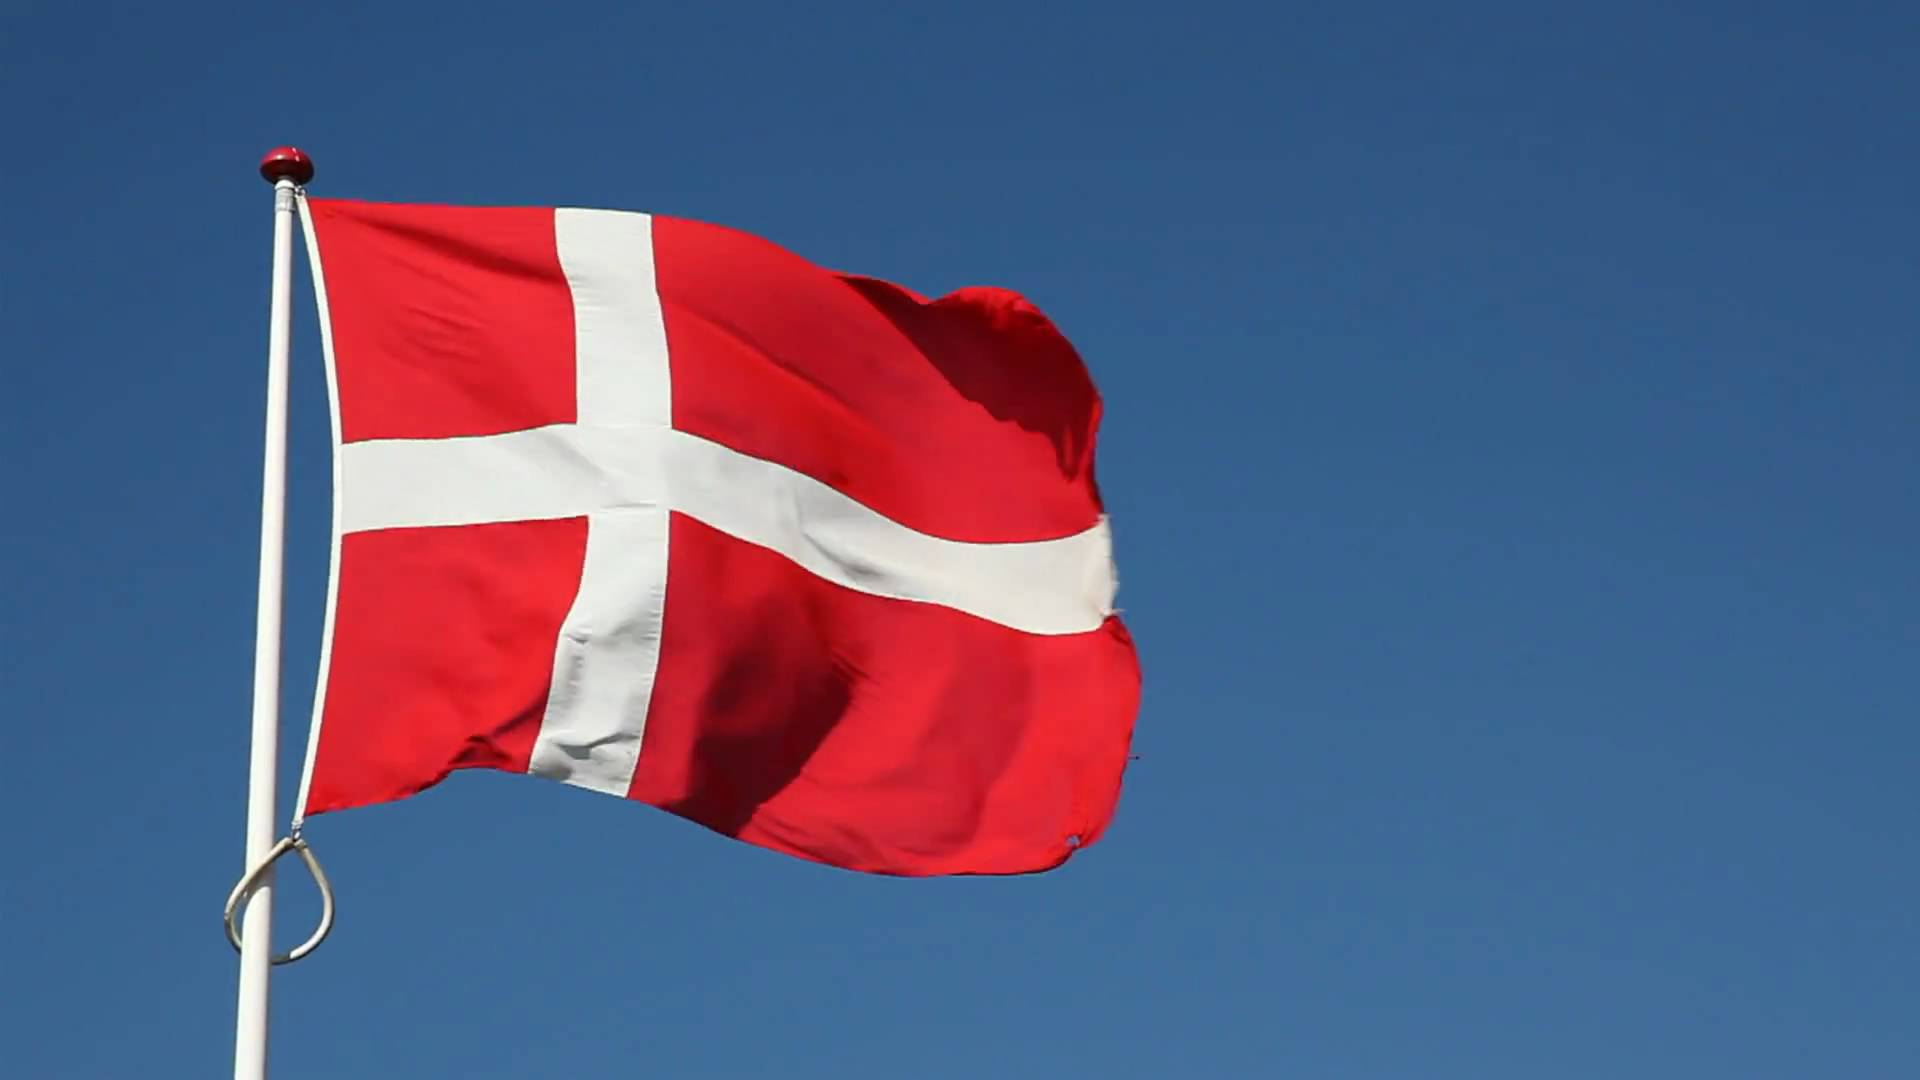 Amazing Flag Of Denmark Pictures & Backgrounds